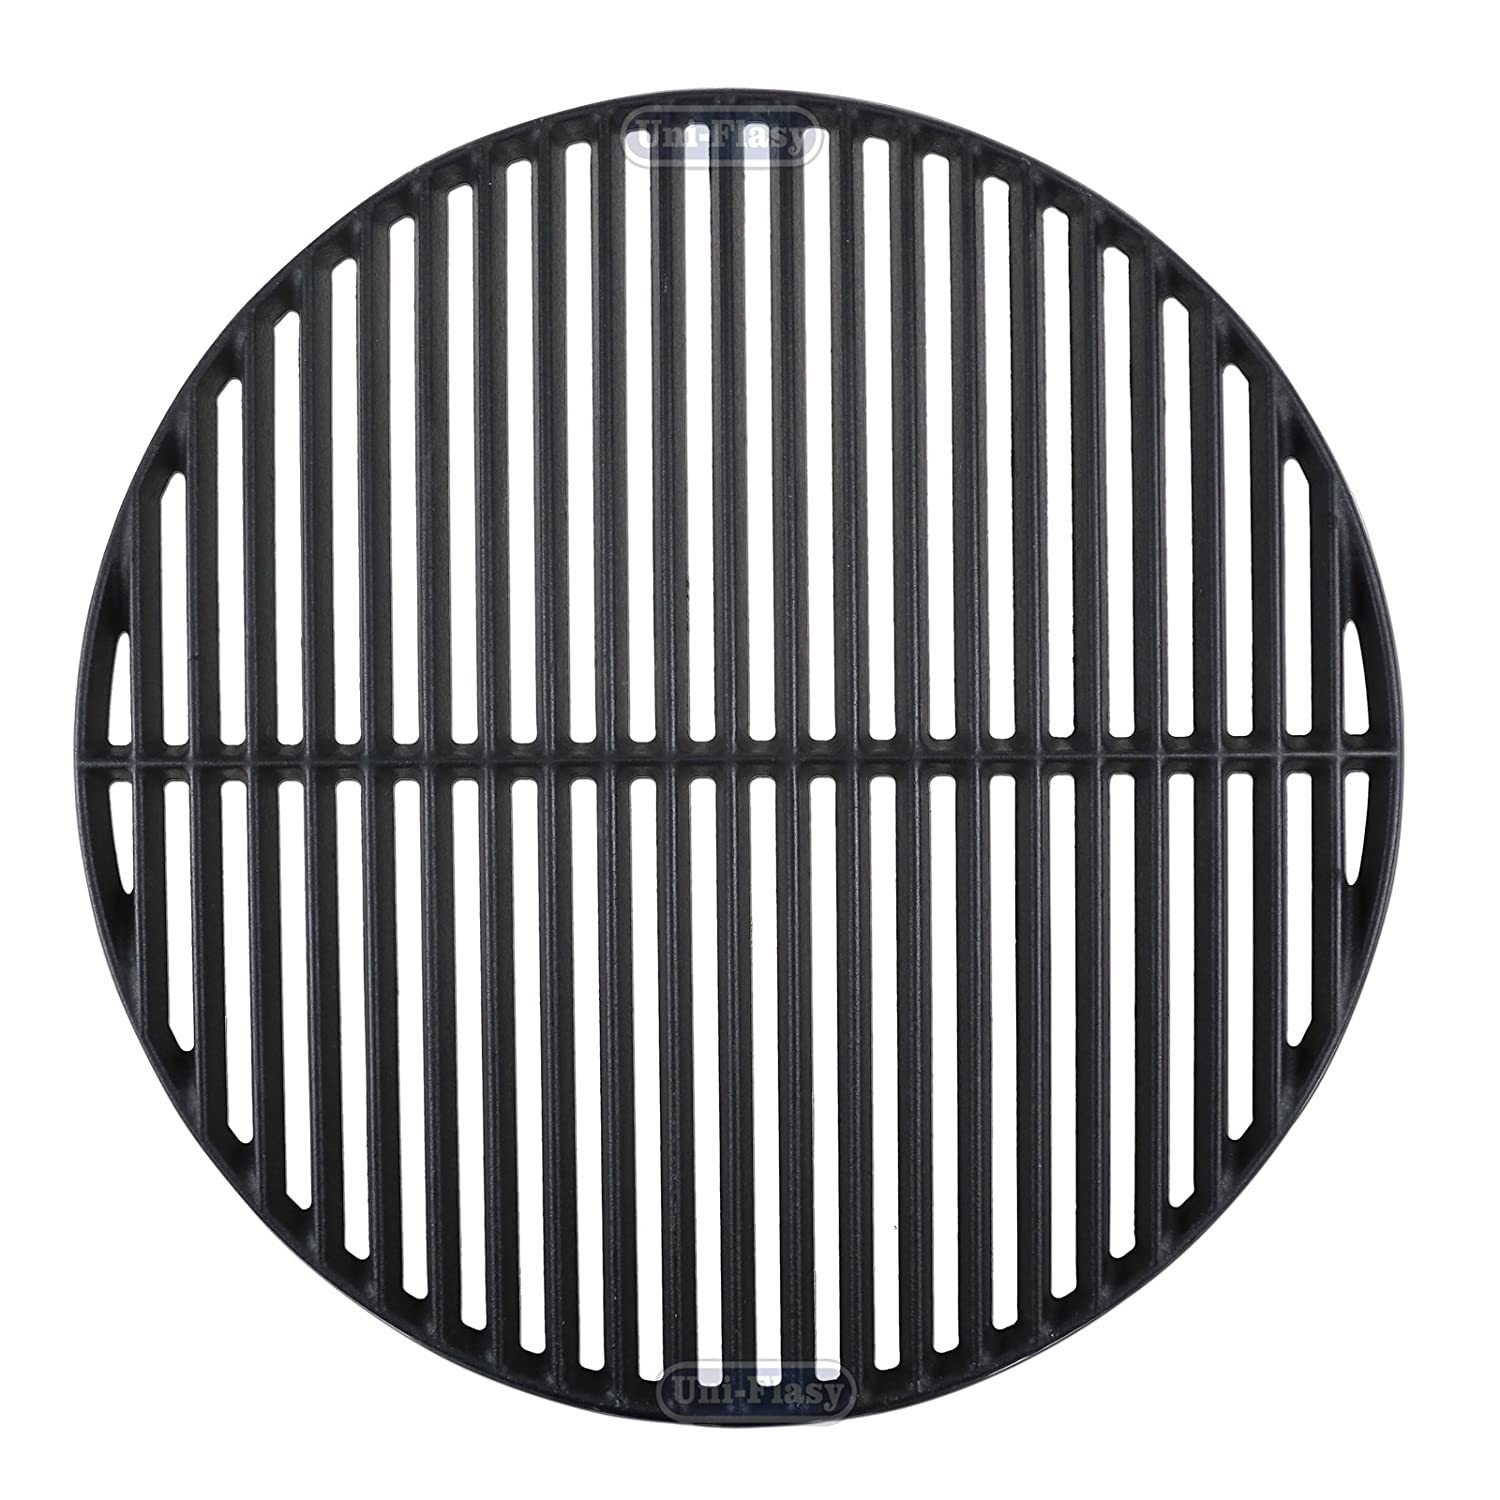 Uniflasy Cast Iron Cooking Grid Grates Replacement Parts for Large Big Green Egg, Vision Grill VGKSS-CC2, B-11N1A1-Y2A Accessories